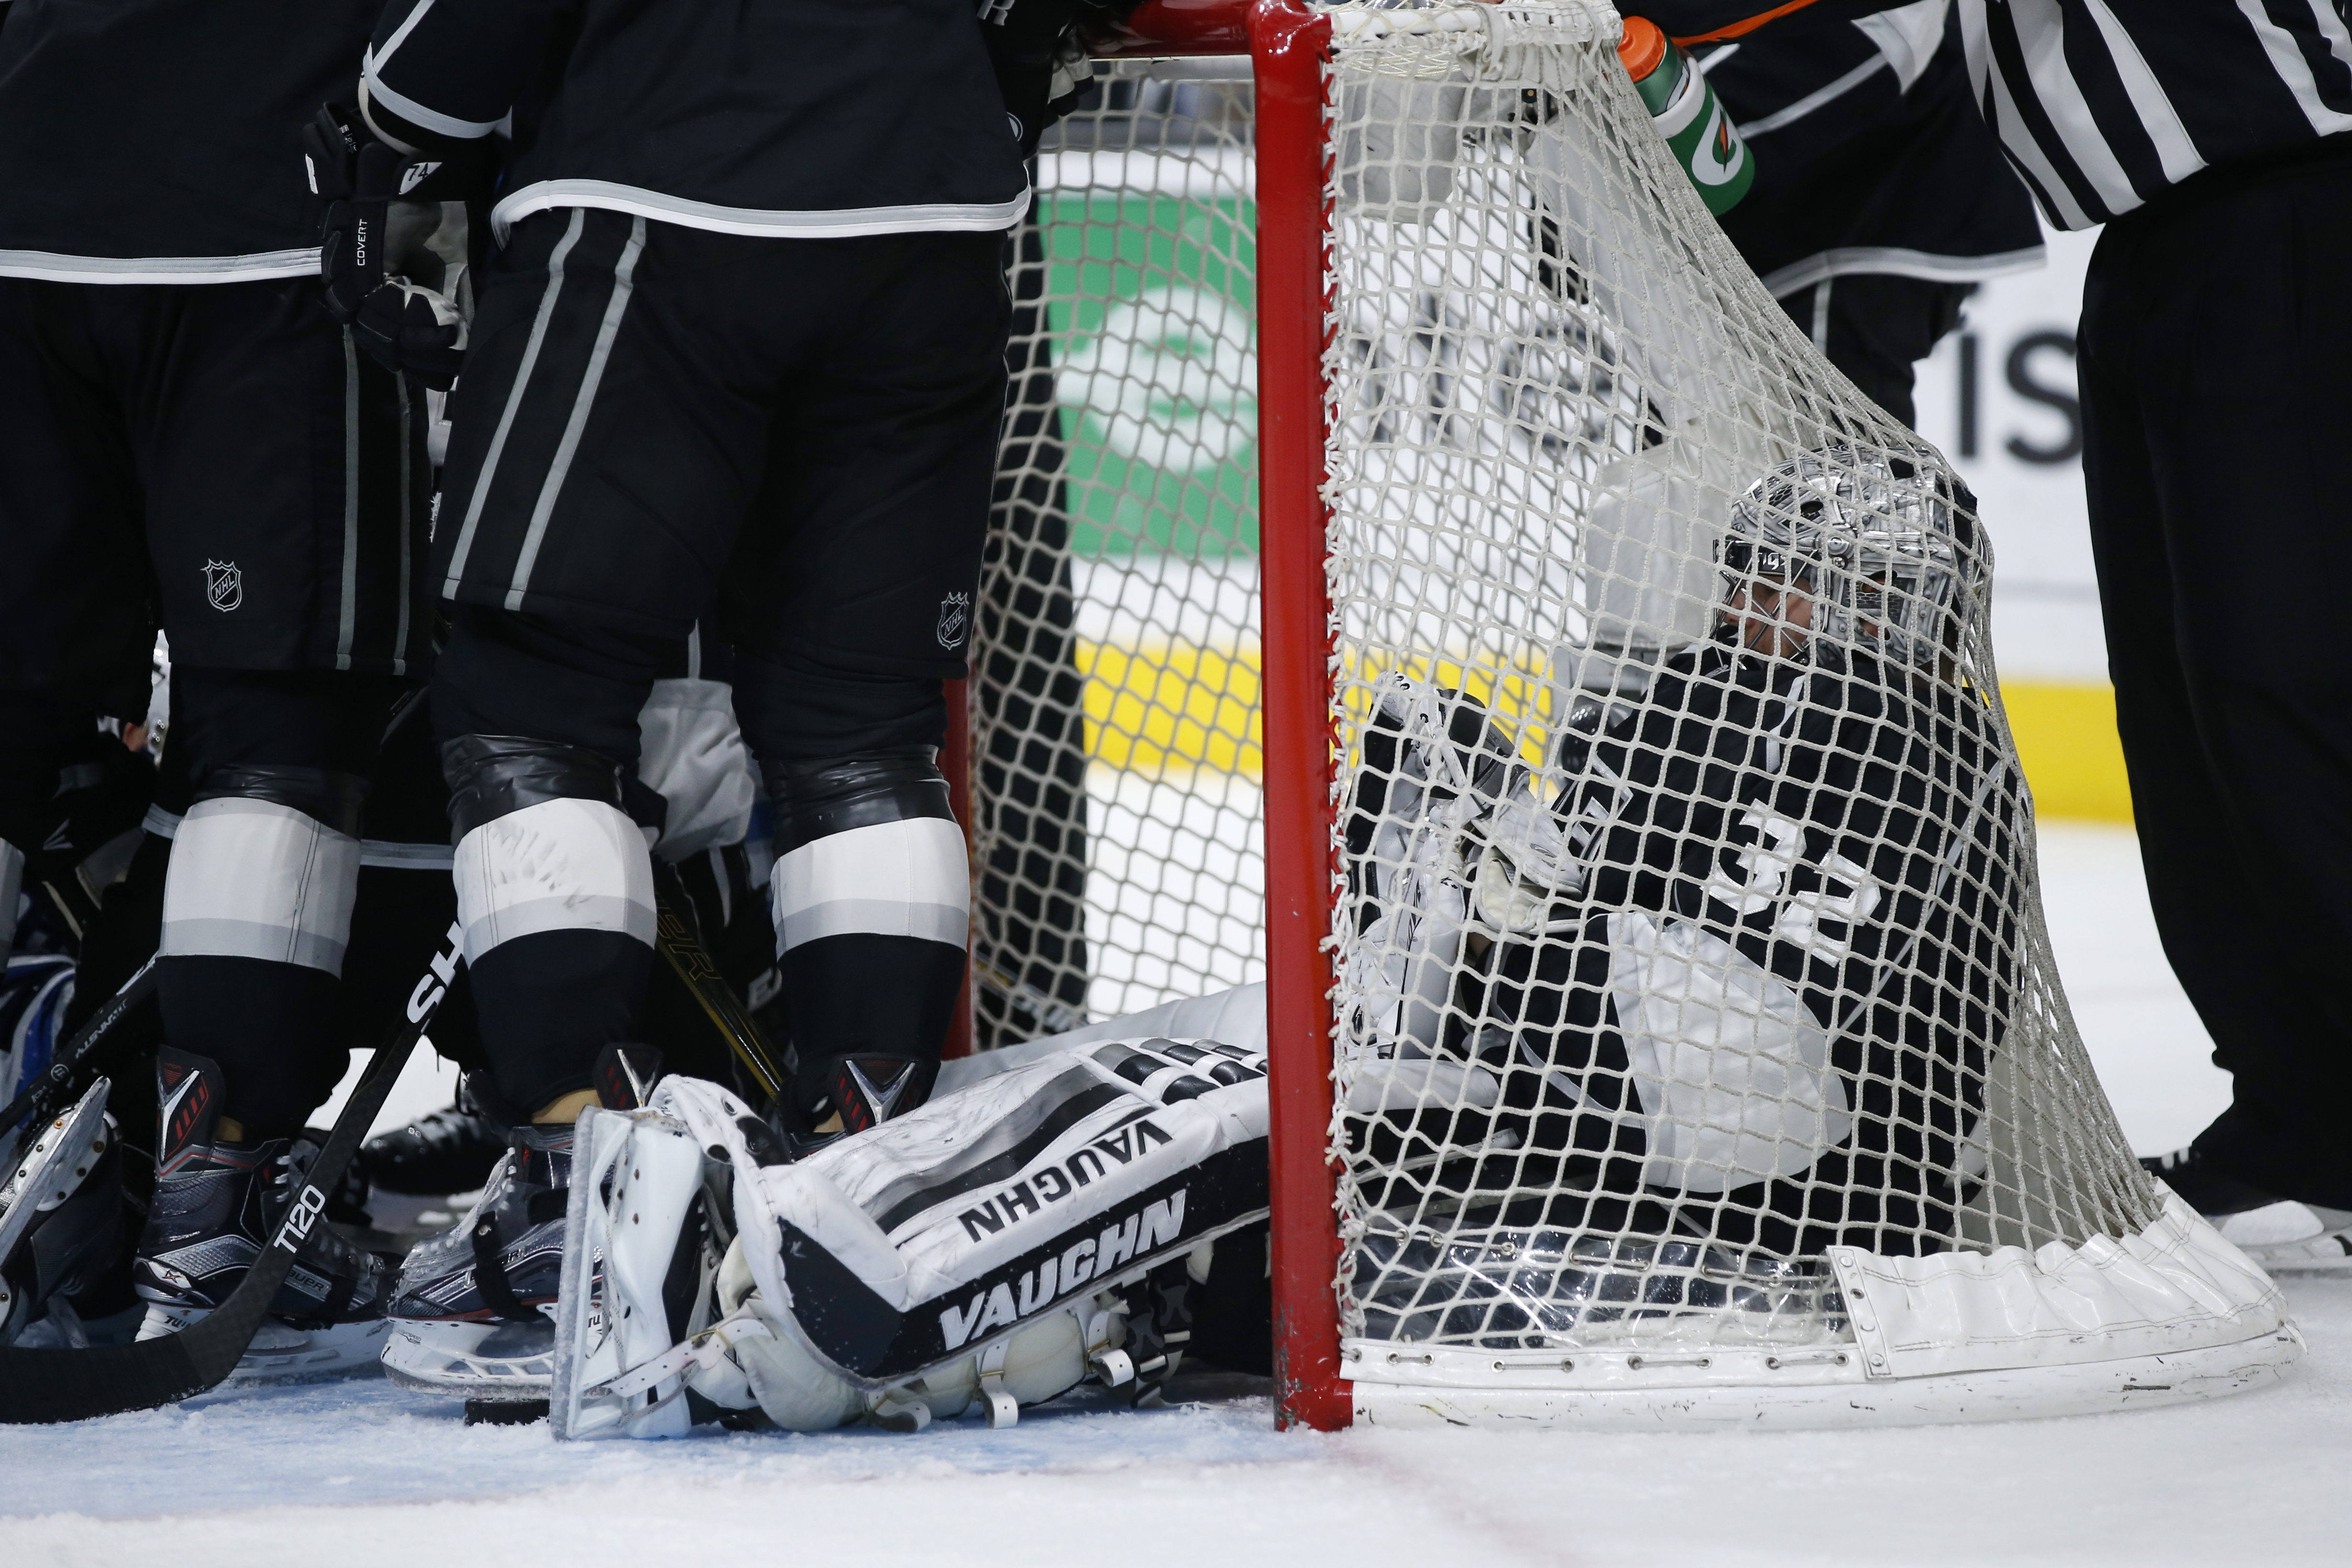 Los Angeles Kings goalie Jonathan Quick sits in the net as he waits for the crease to clear of players following a whistle, after making a save against the Winnipeg Jets during the third period of an NHL hockey game, Saturday, April 9, 2016, in Los Angele